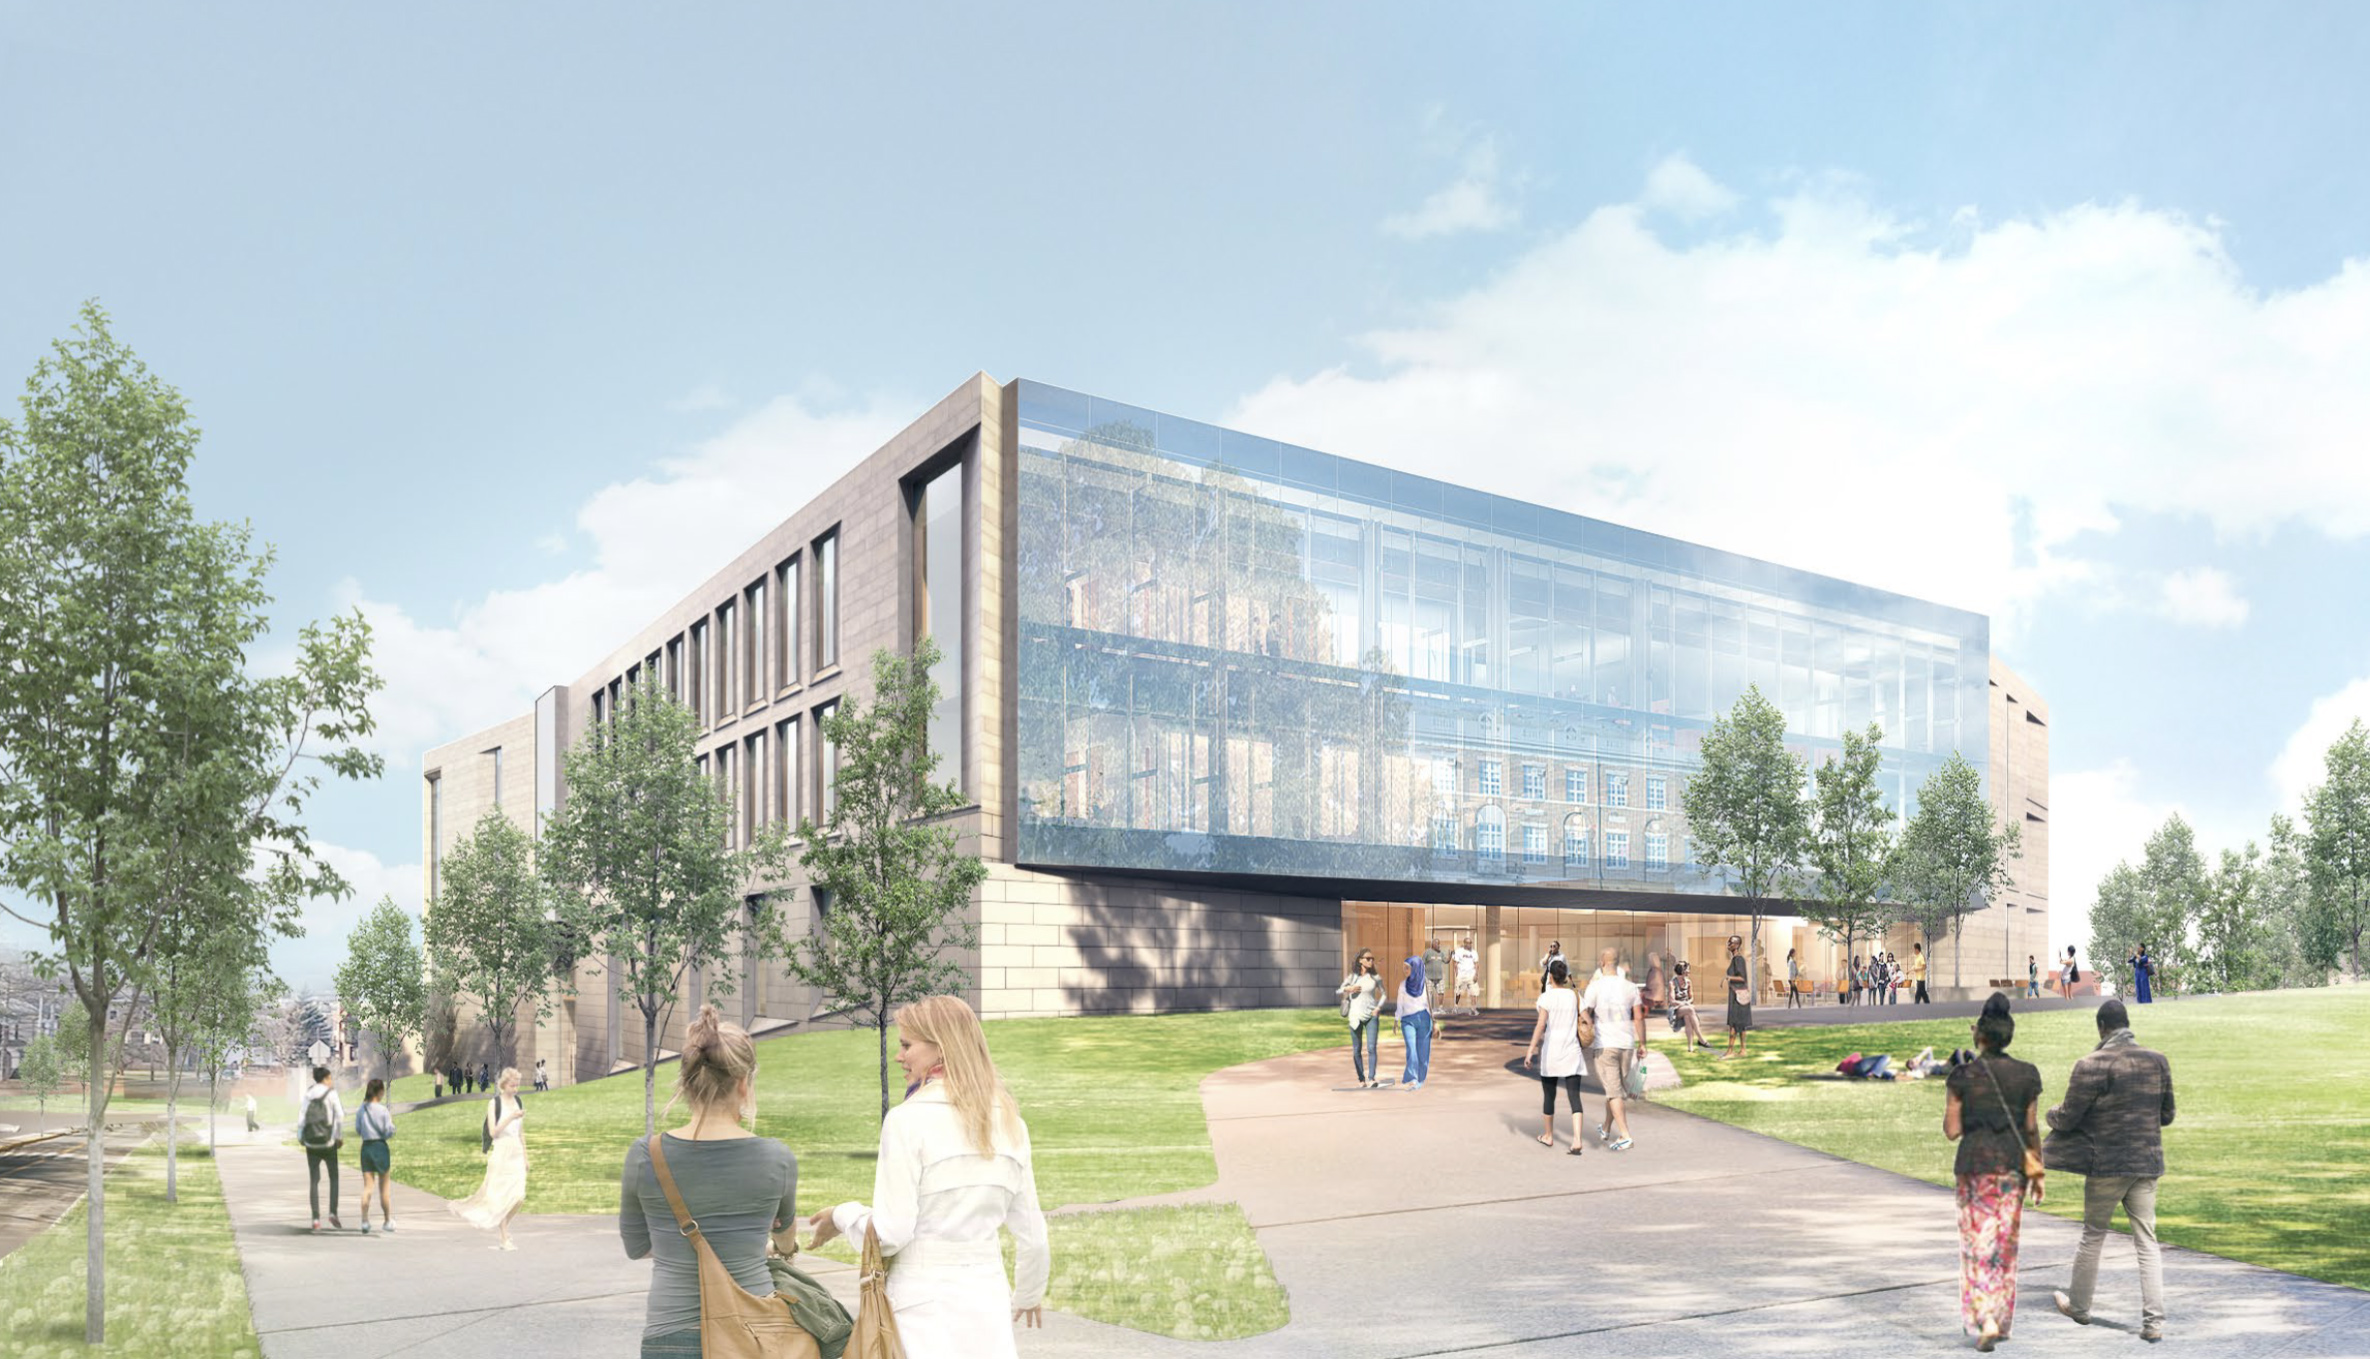 A new, 193,00 square-foot science center would replace Hall Atwater Laboratory. (Illustration courtesy of Payette Architects)